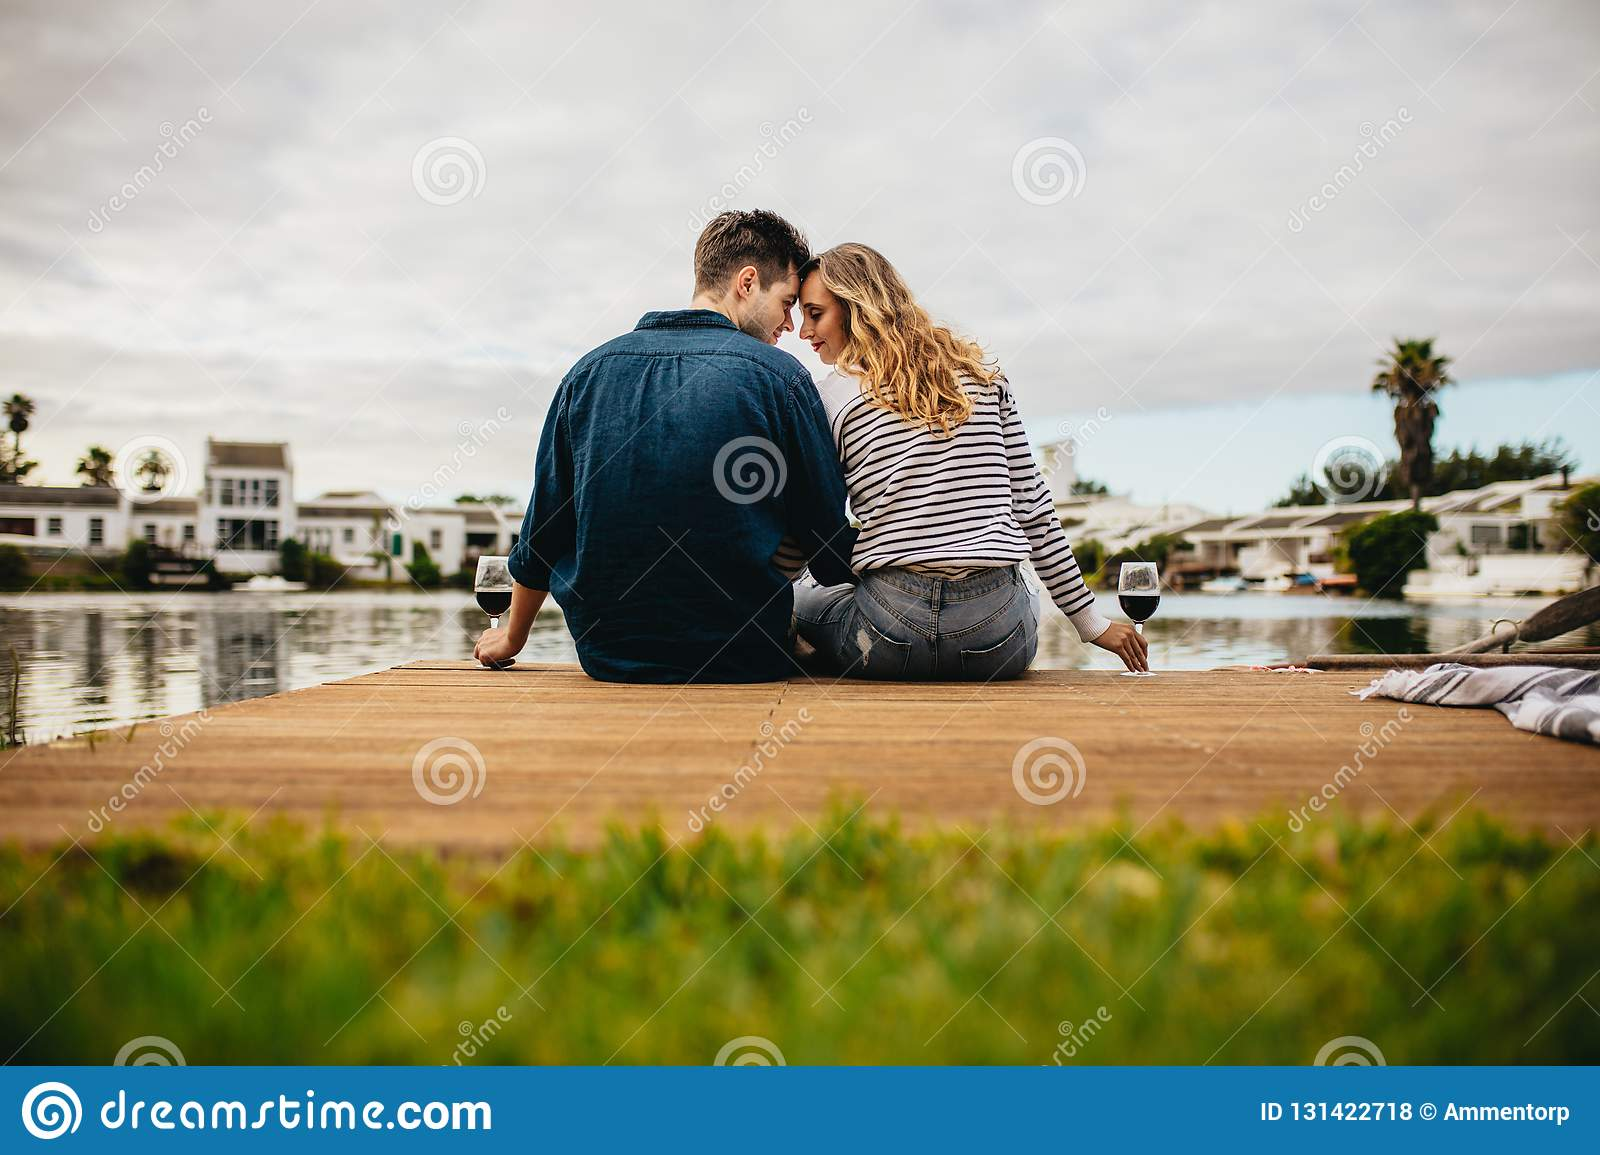 Rear view of a couple in love sitting together touching their heads near a lake. Couple on a day out sitting together holding wine